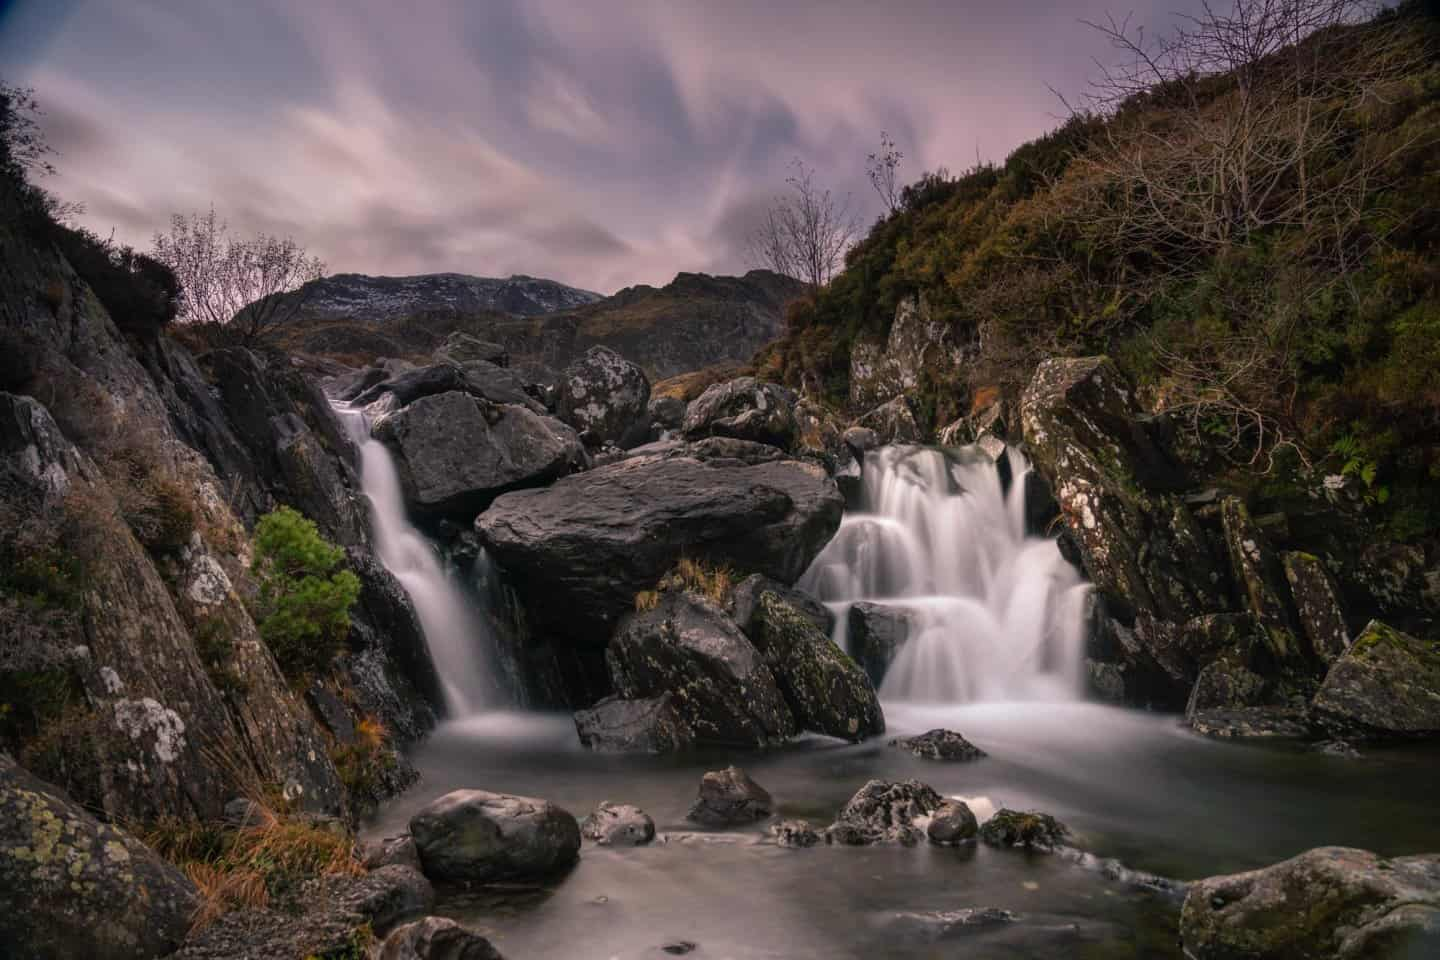 One of many Snowdonia photography locations that feature a waterfall.